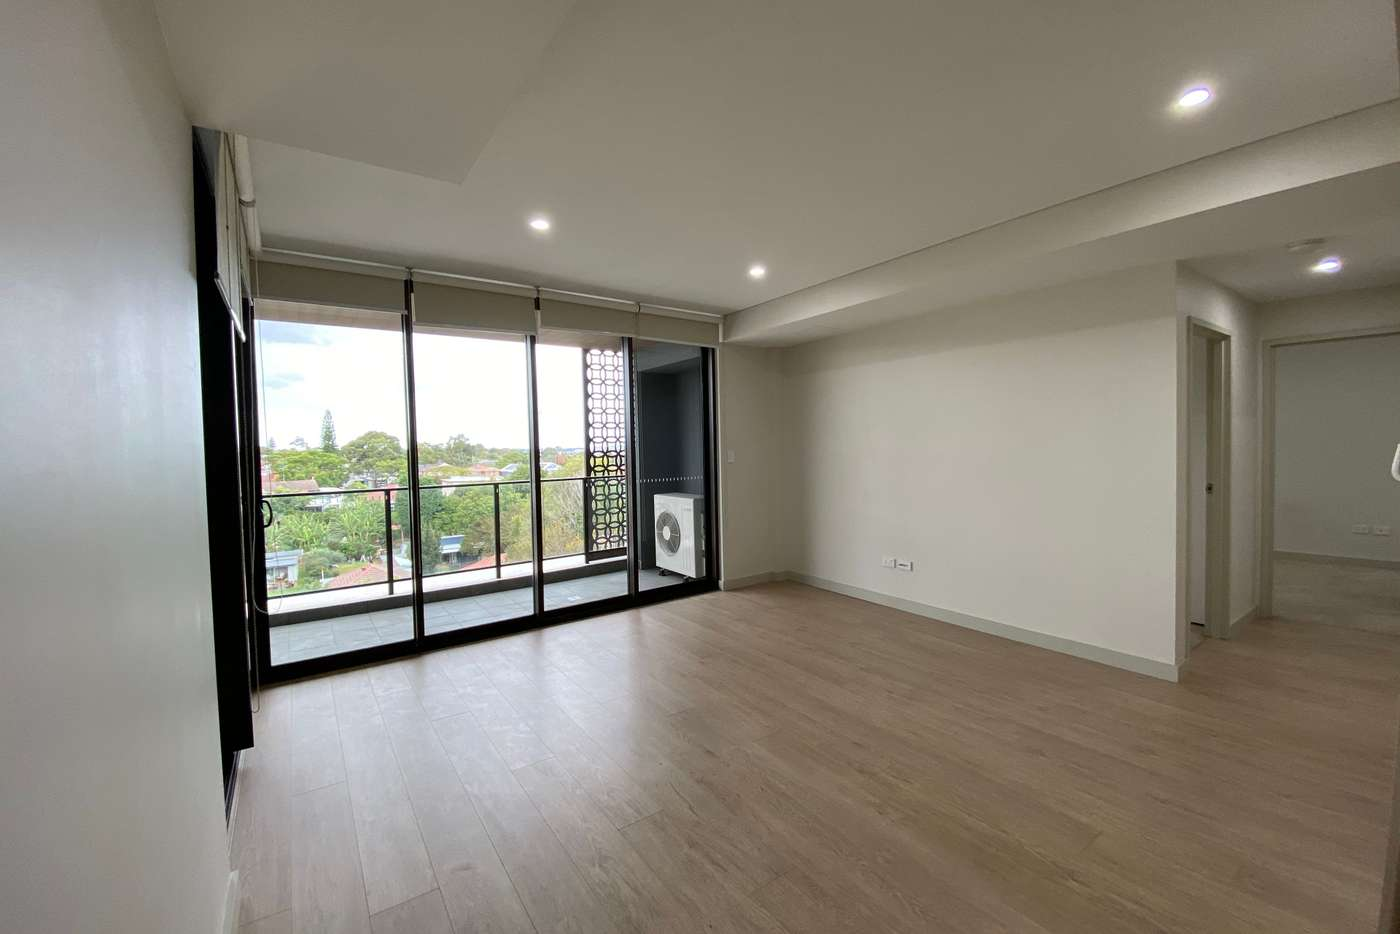 Sixth view of Homely apartment listing, 407/11 Porter Street, Meadowbank NSW 2114